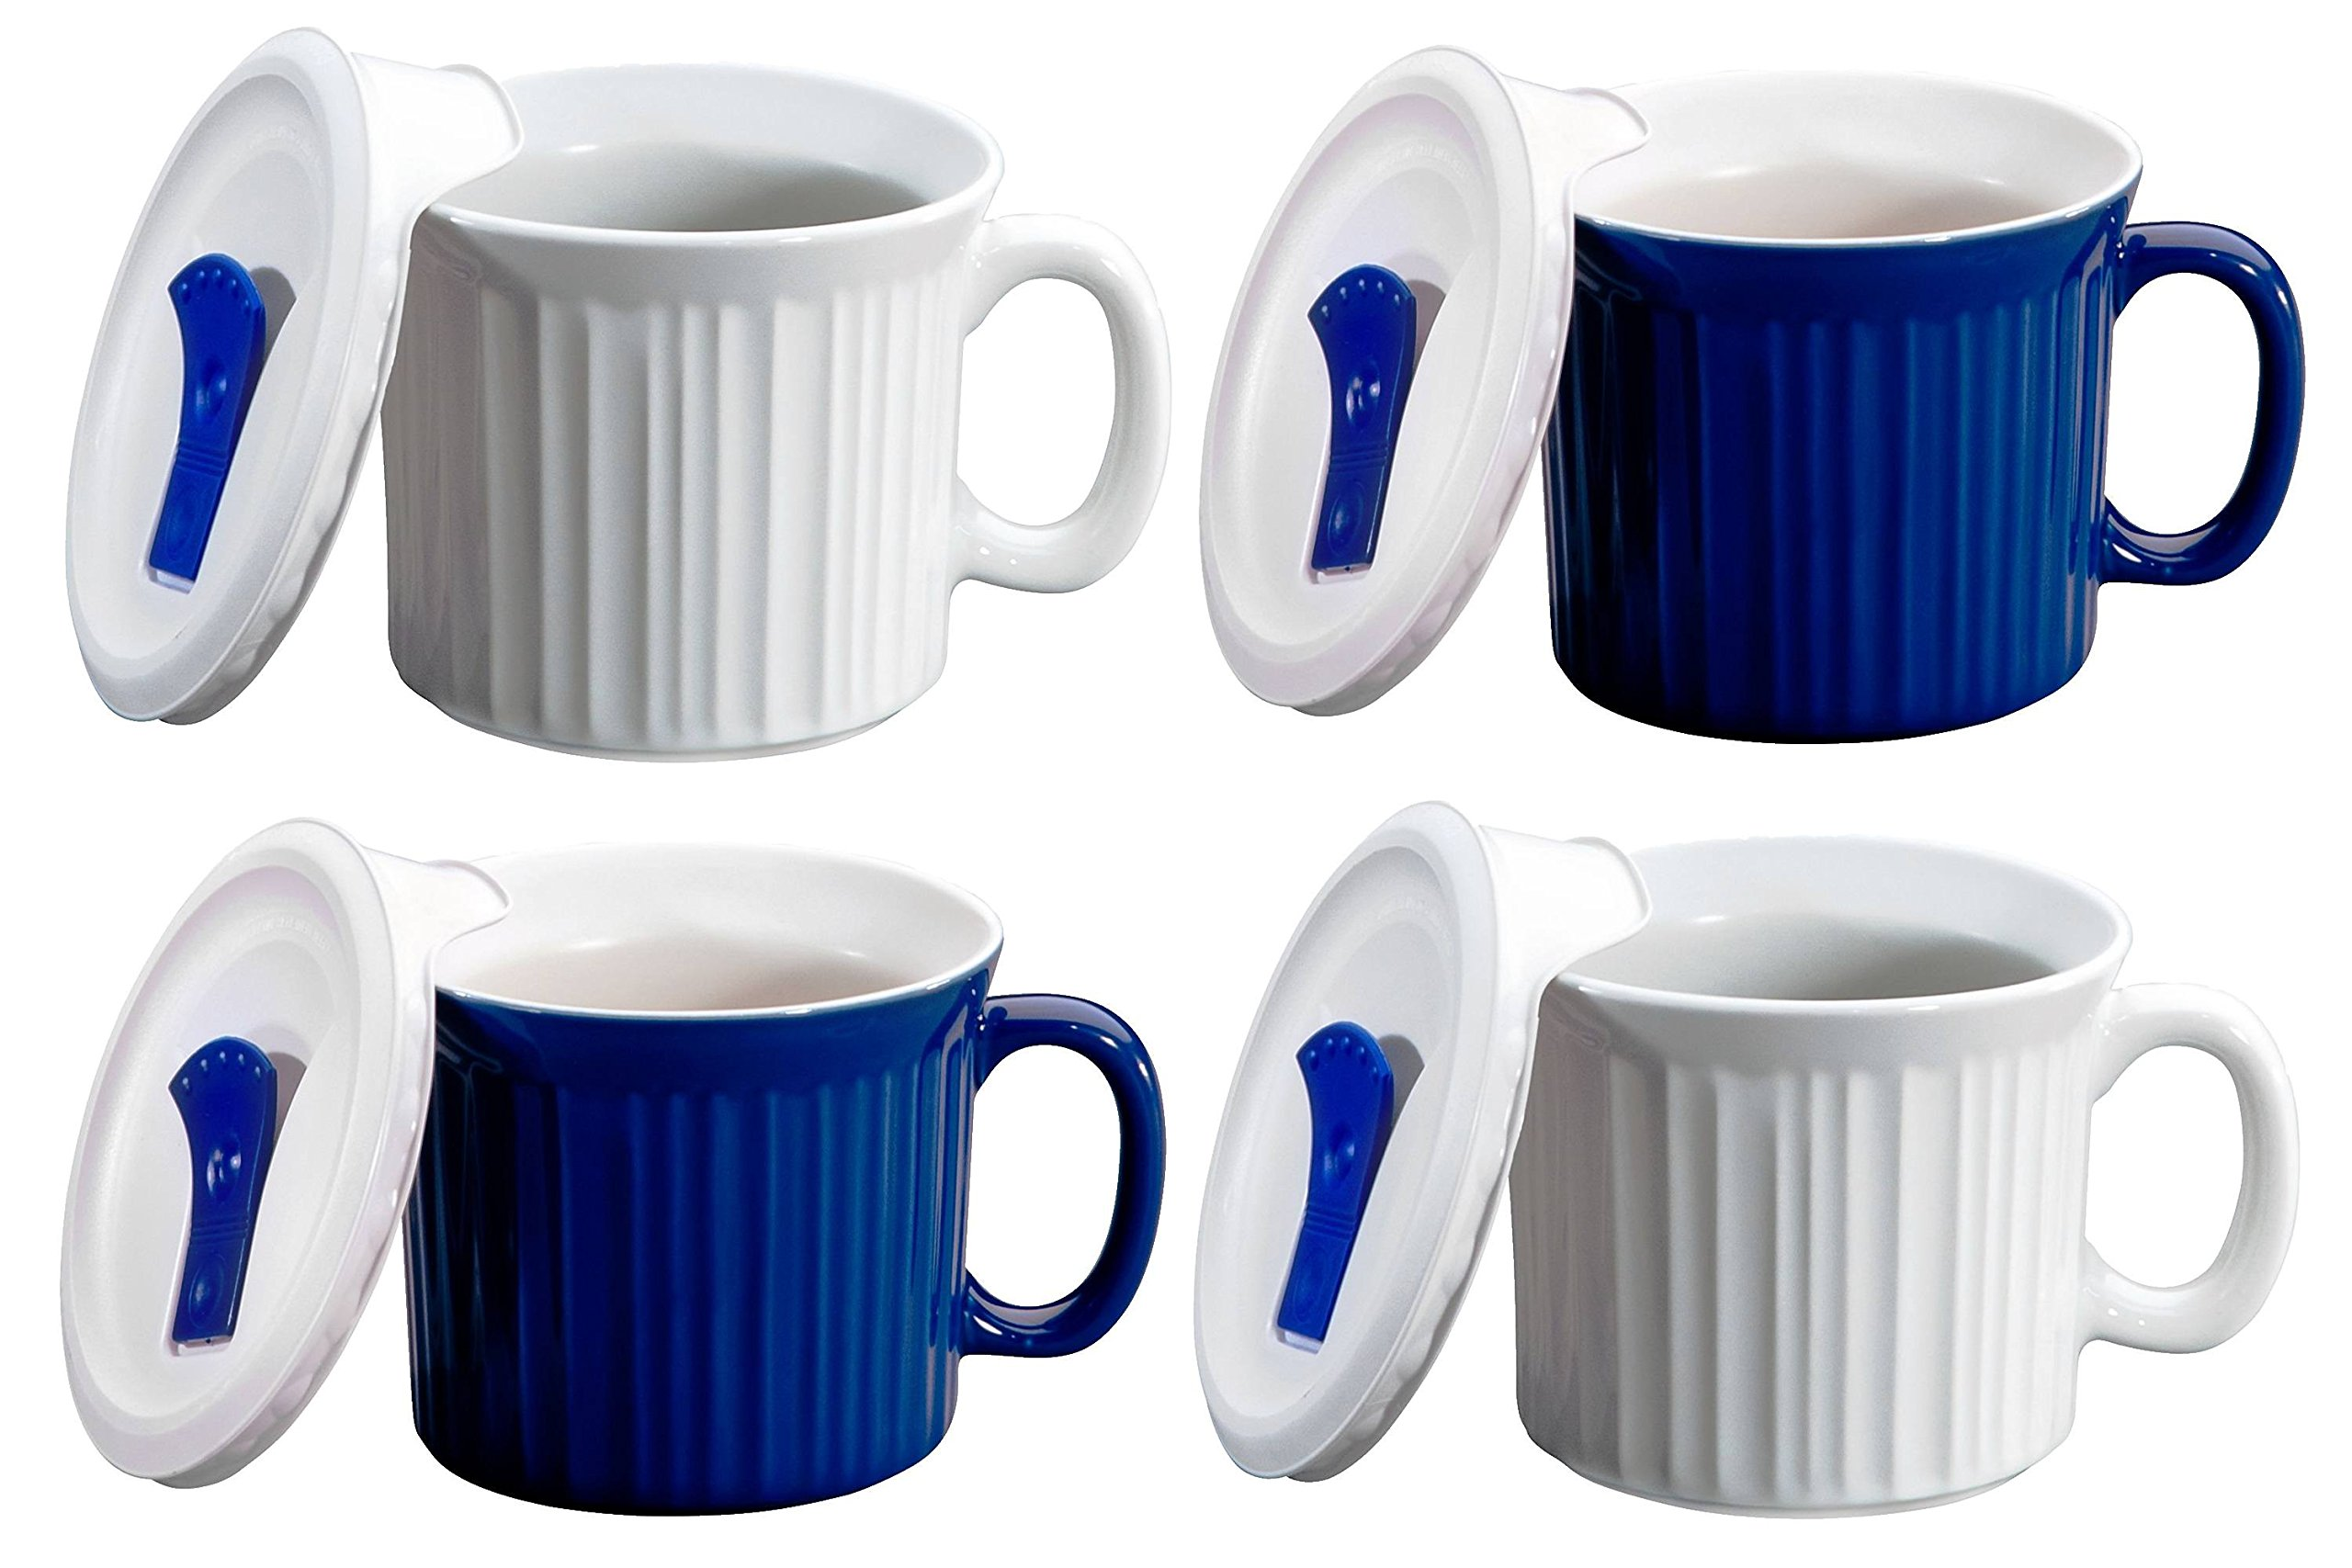 CorningWare Pop in mug, 4 mugs with vented plastic covers (Bake, Microwave) 20 oz/591ml (White/Blue)